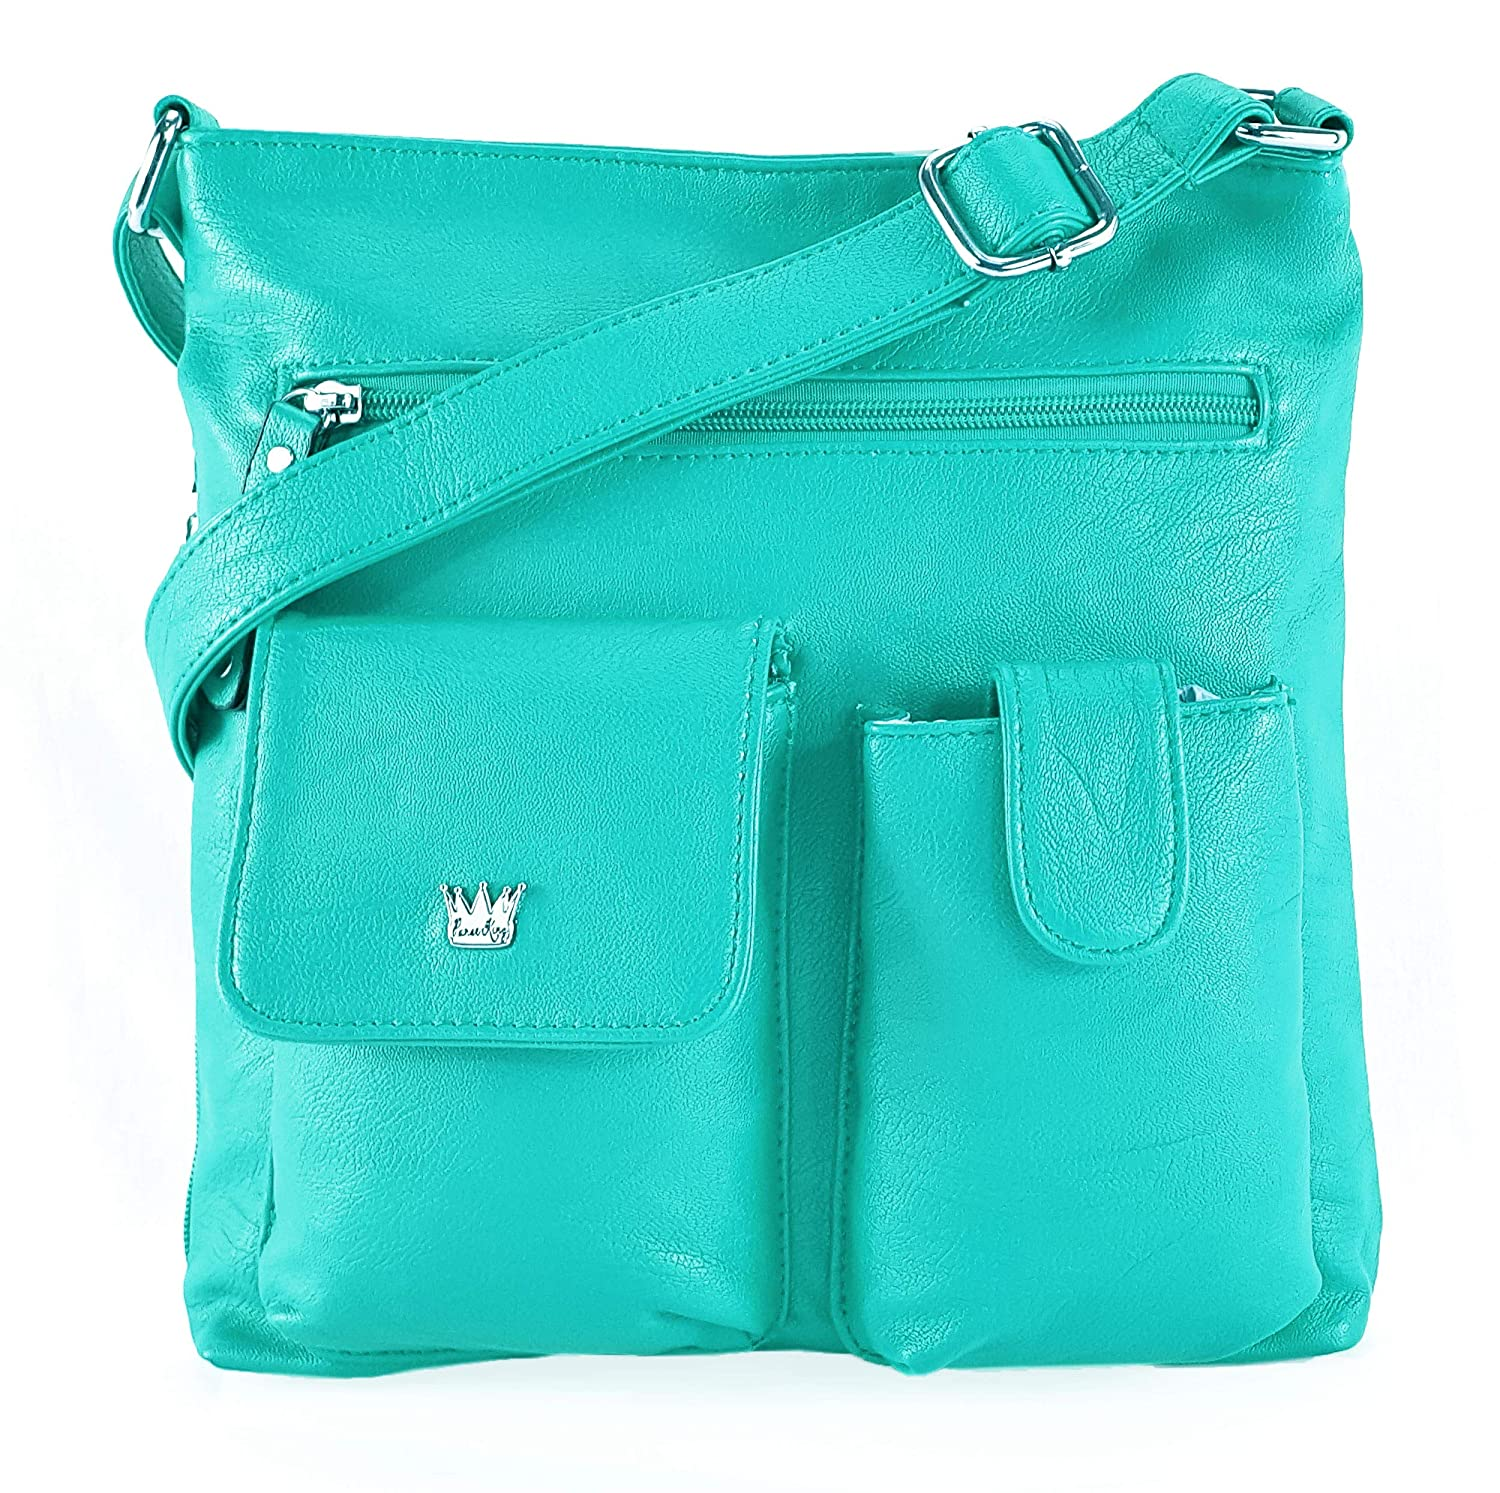 Turquoise Purse King Colt Concealed Carry Handbag